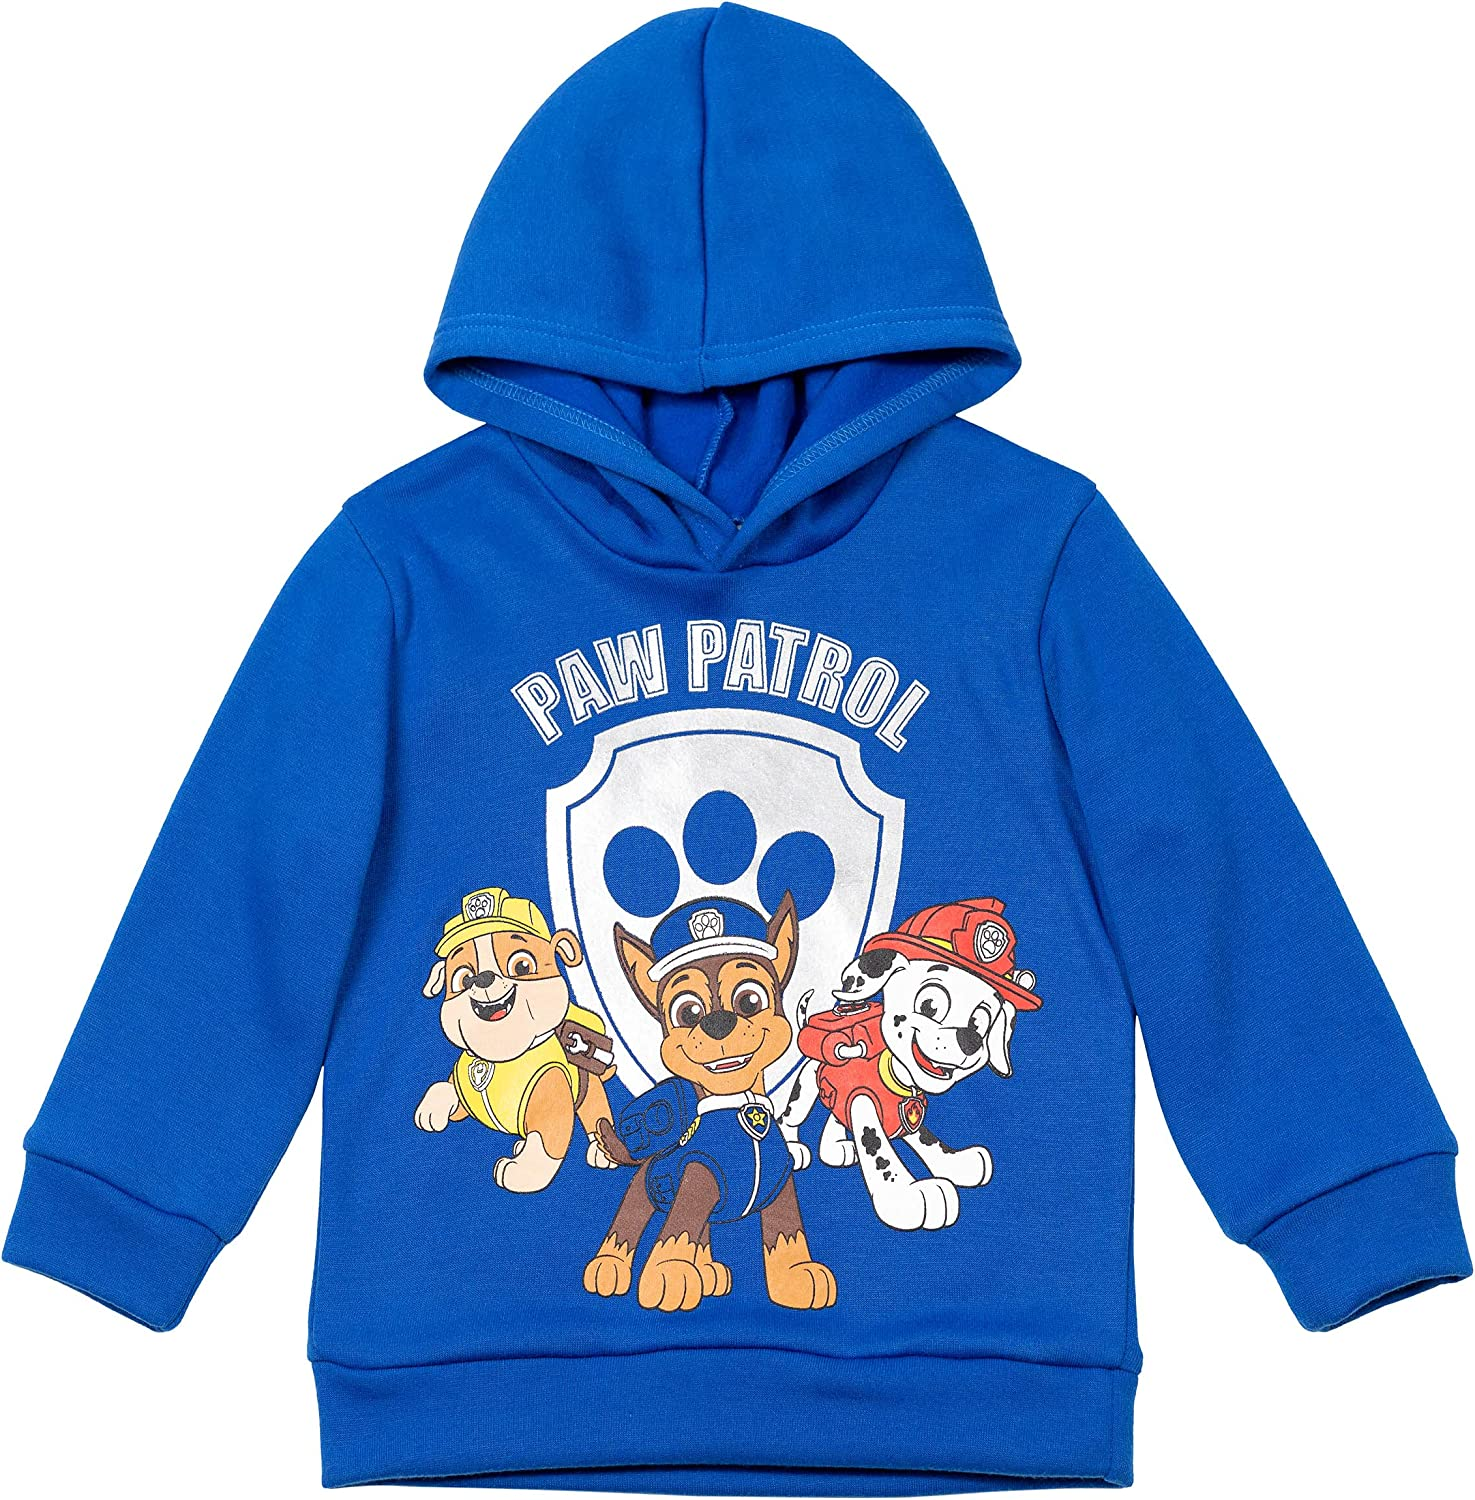 Nickelodeon Paw Patrol Toddler/Little Boys Fleece Pullover Hoodie: Clothing, Shoes & Jewelry